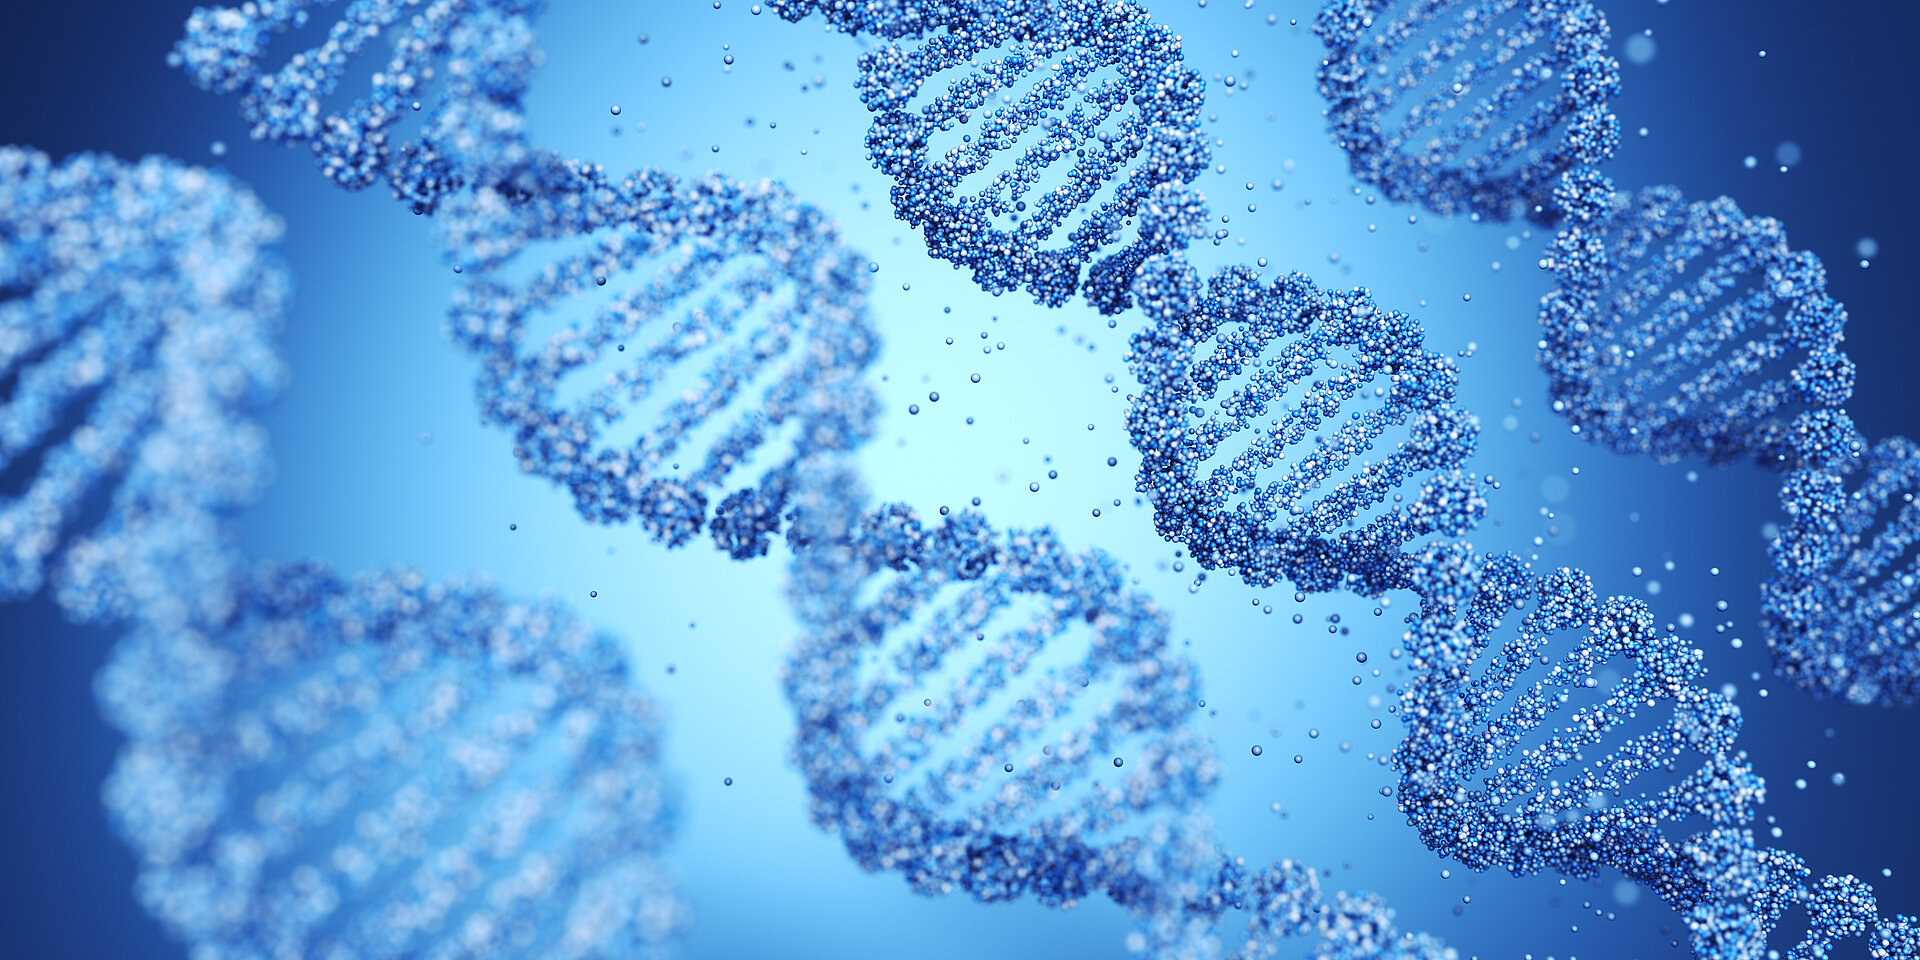 Our clinically actionable selection of genes gives you a better shot at prevention.